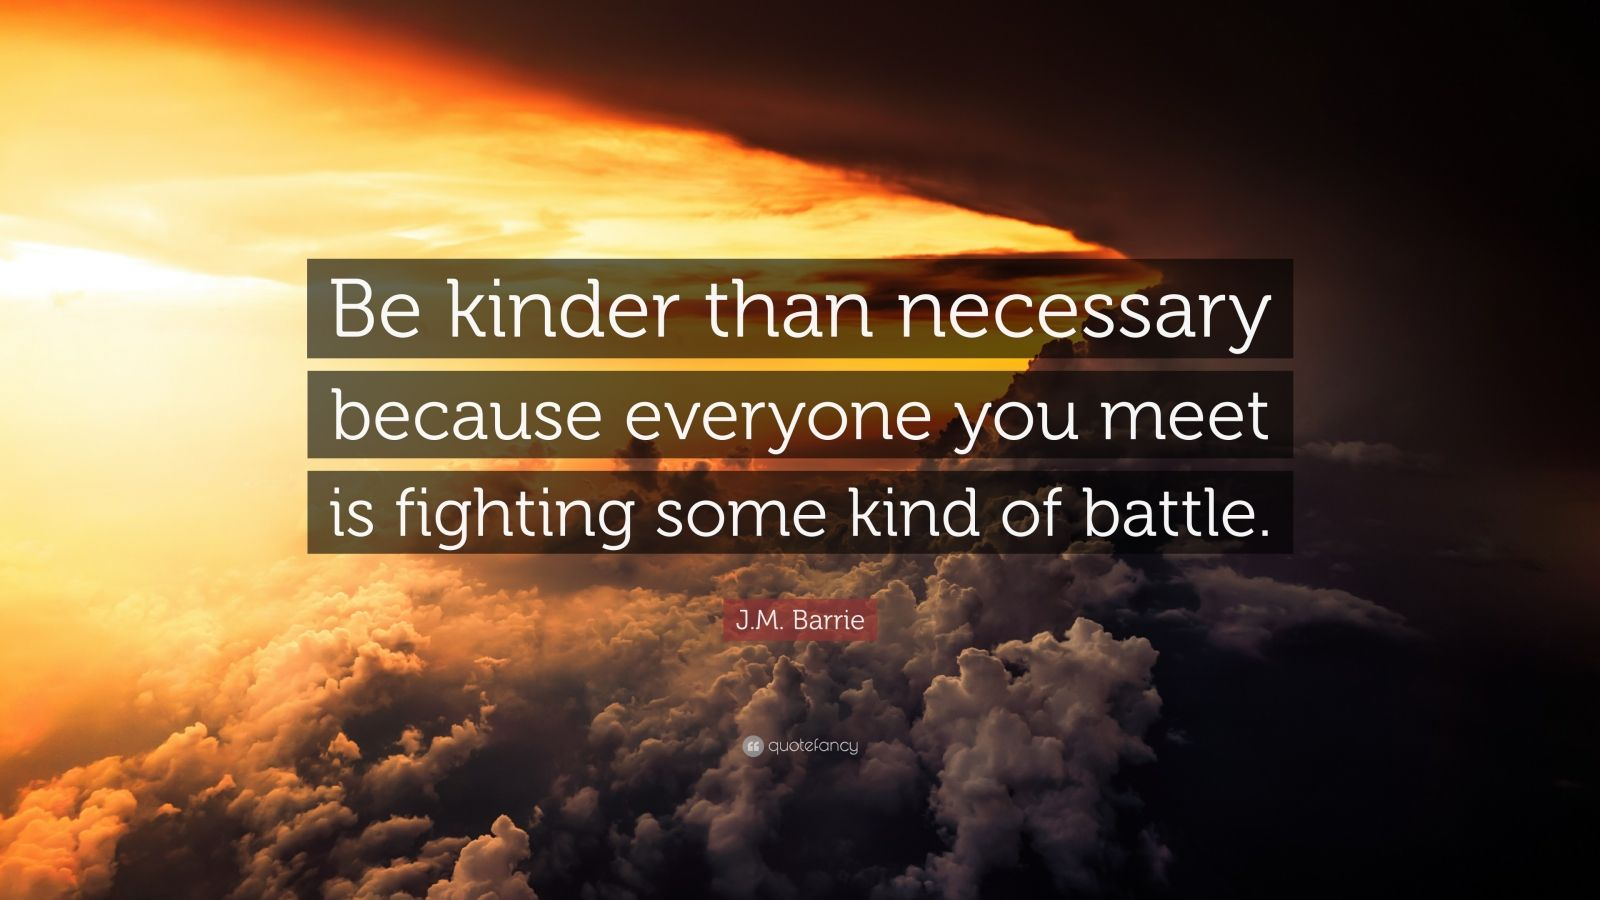 Steve Jobs Motivational Quotes Wallpaper J M Barrie Quote Be Kinder Than Necessary Because